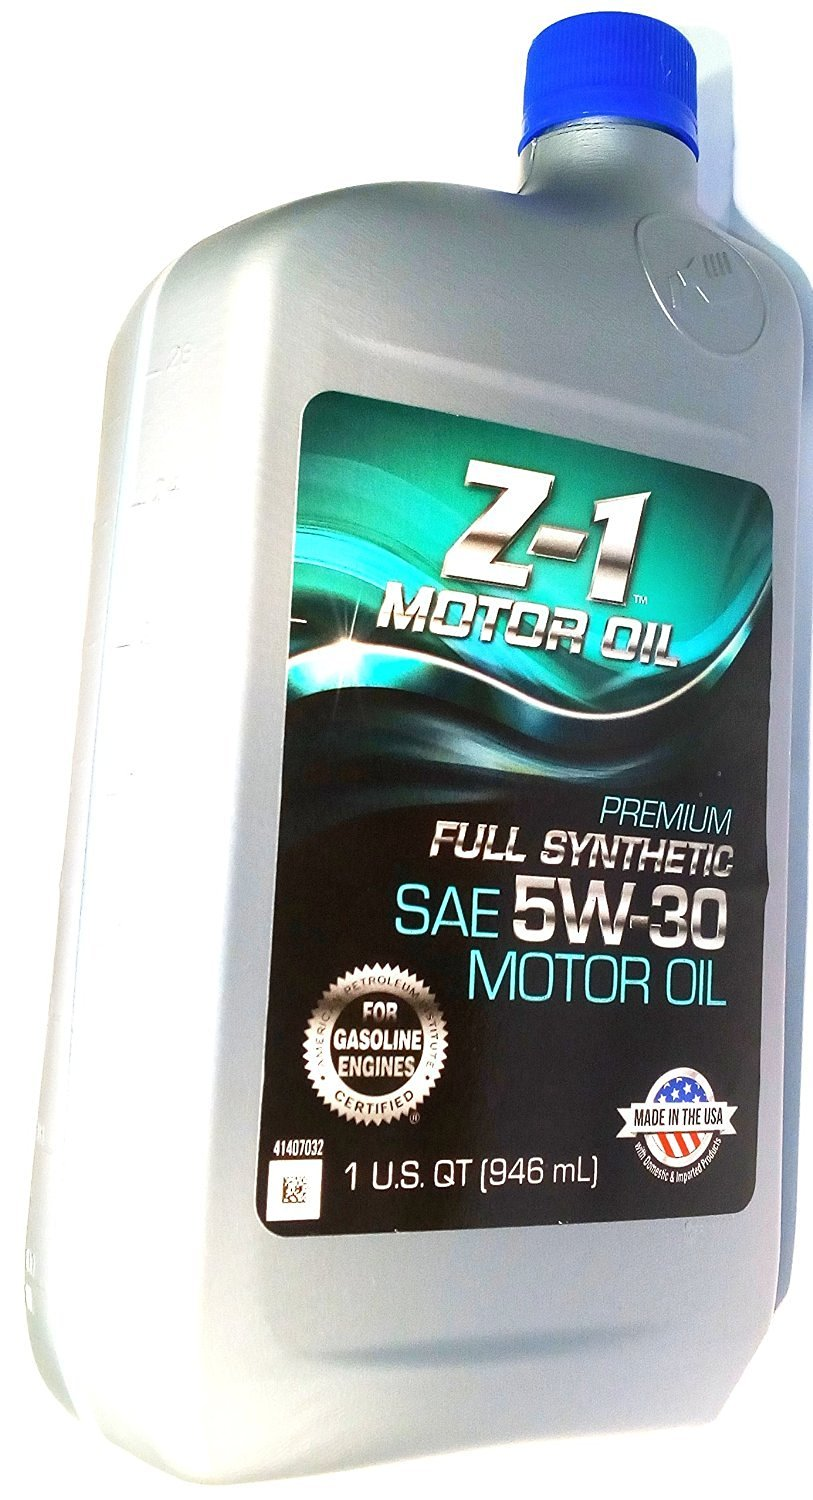 Genuine Z-1 Certified - Premium Full Synthetic Gasolines Engine Oil - SAE 5W-30 - Advanced Wear Protection- (1 U.S. Quart/946 mL) - Bottle - [Case of 12]